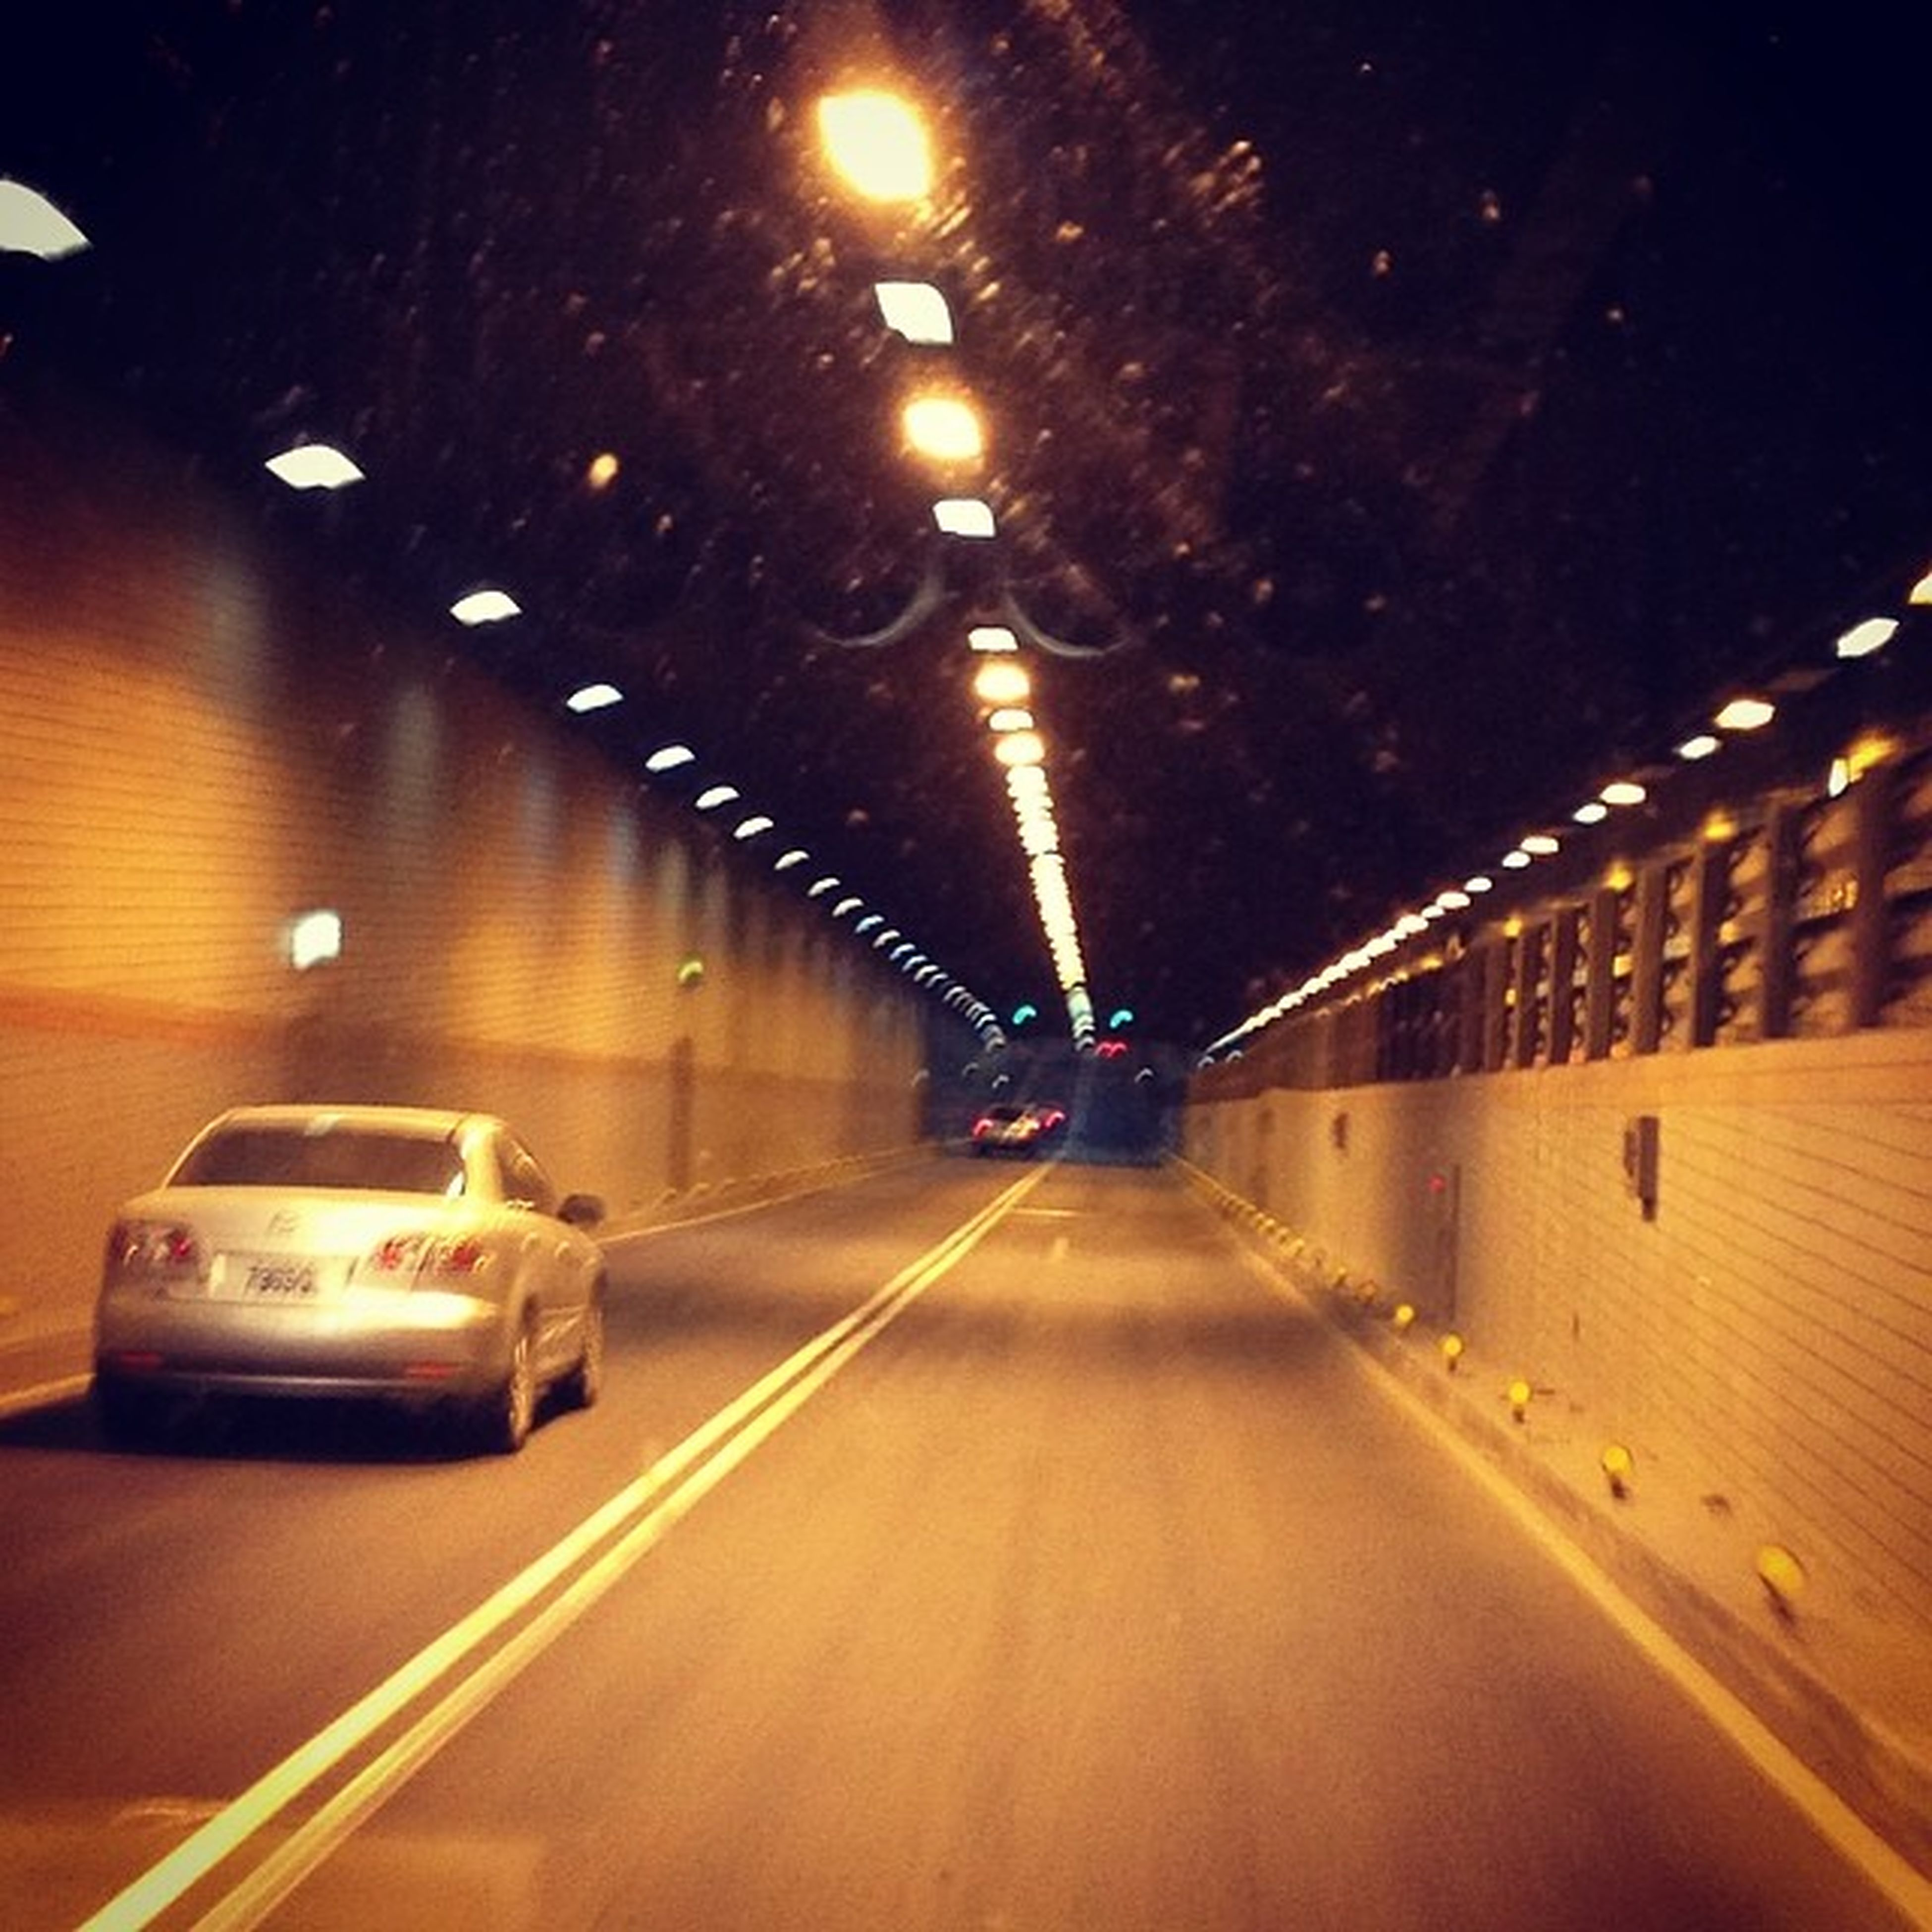 illuminated, night, the way forward, transportation, lighting equipment, diminishing perspective, road, vanishing point, street light, indoors, in a row, tunnel, road marking, motion, light - natural phenomenon, street, empty, glowing, electric light, no people